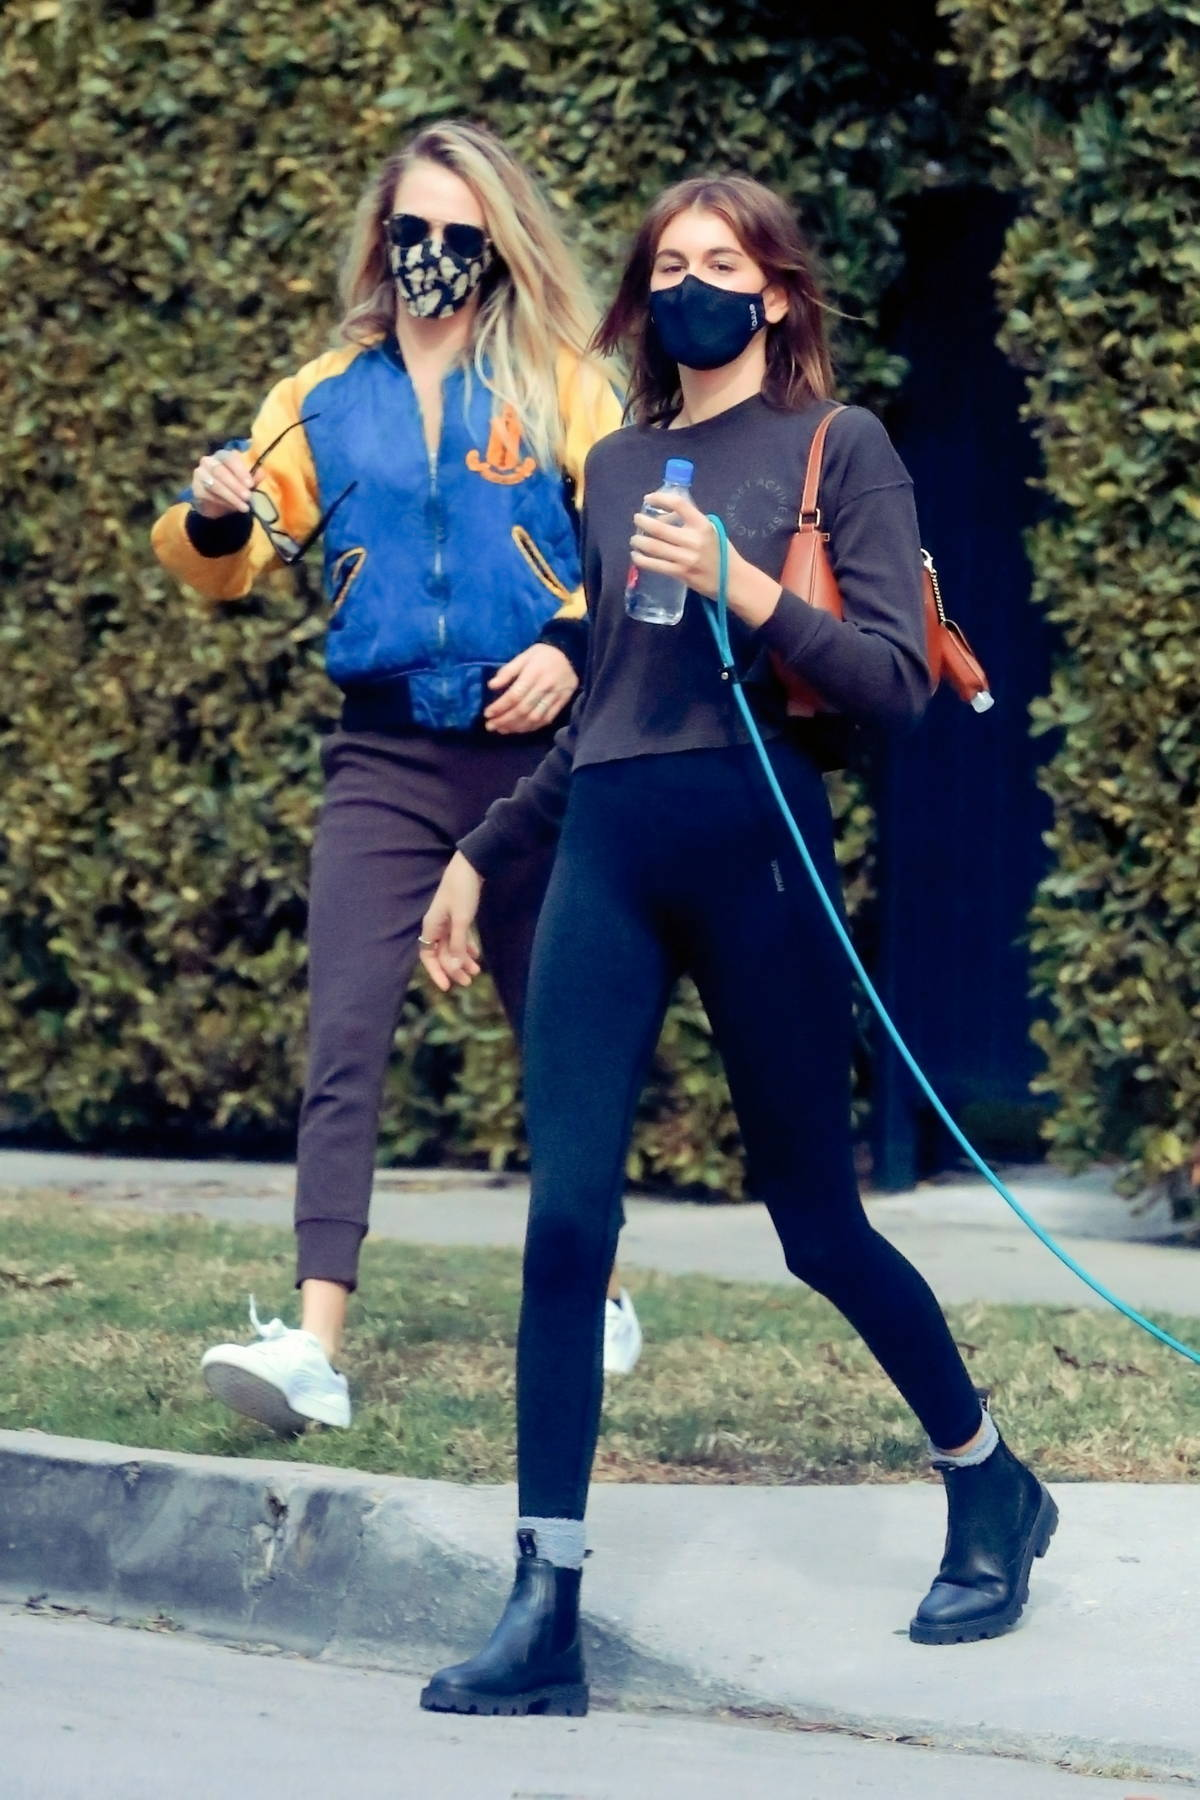 Kaia Gerber and Cara Delevingne seen leaving after their morning Pilates class in Los Angeles